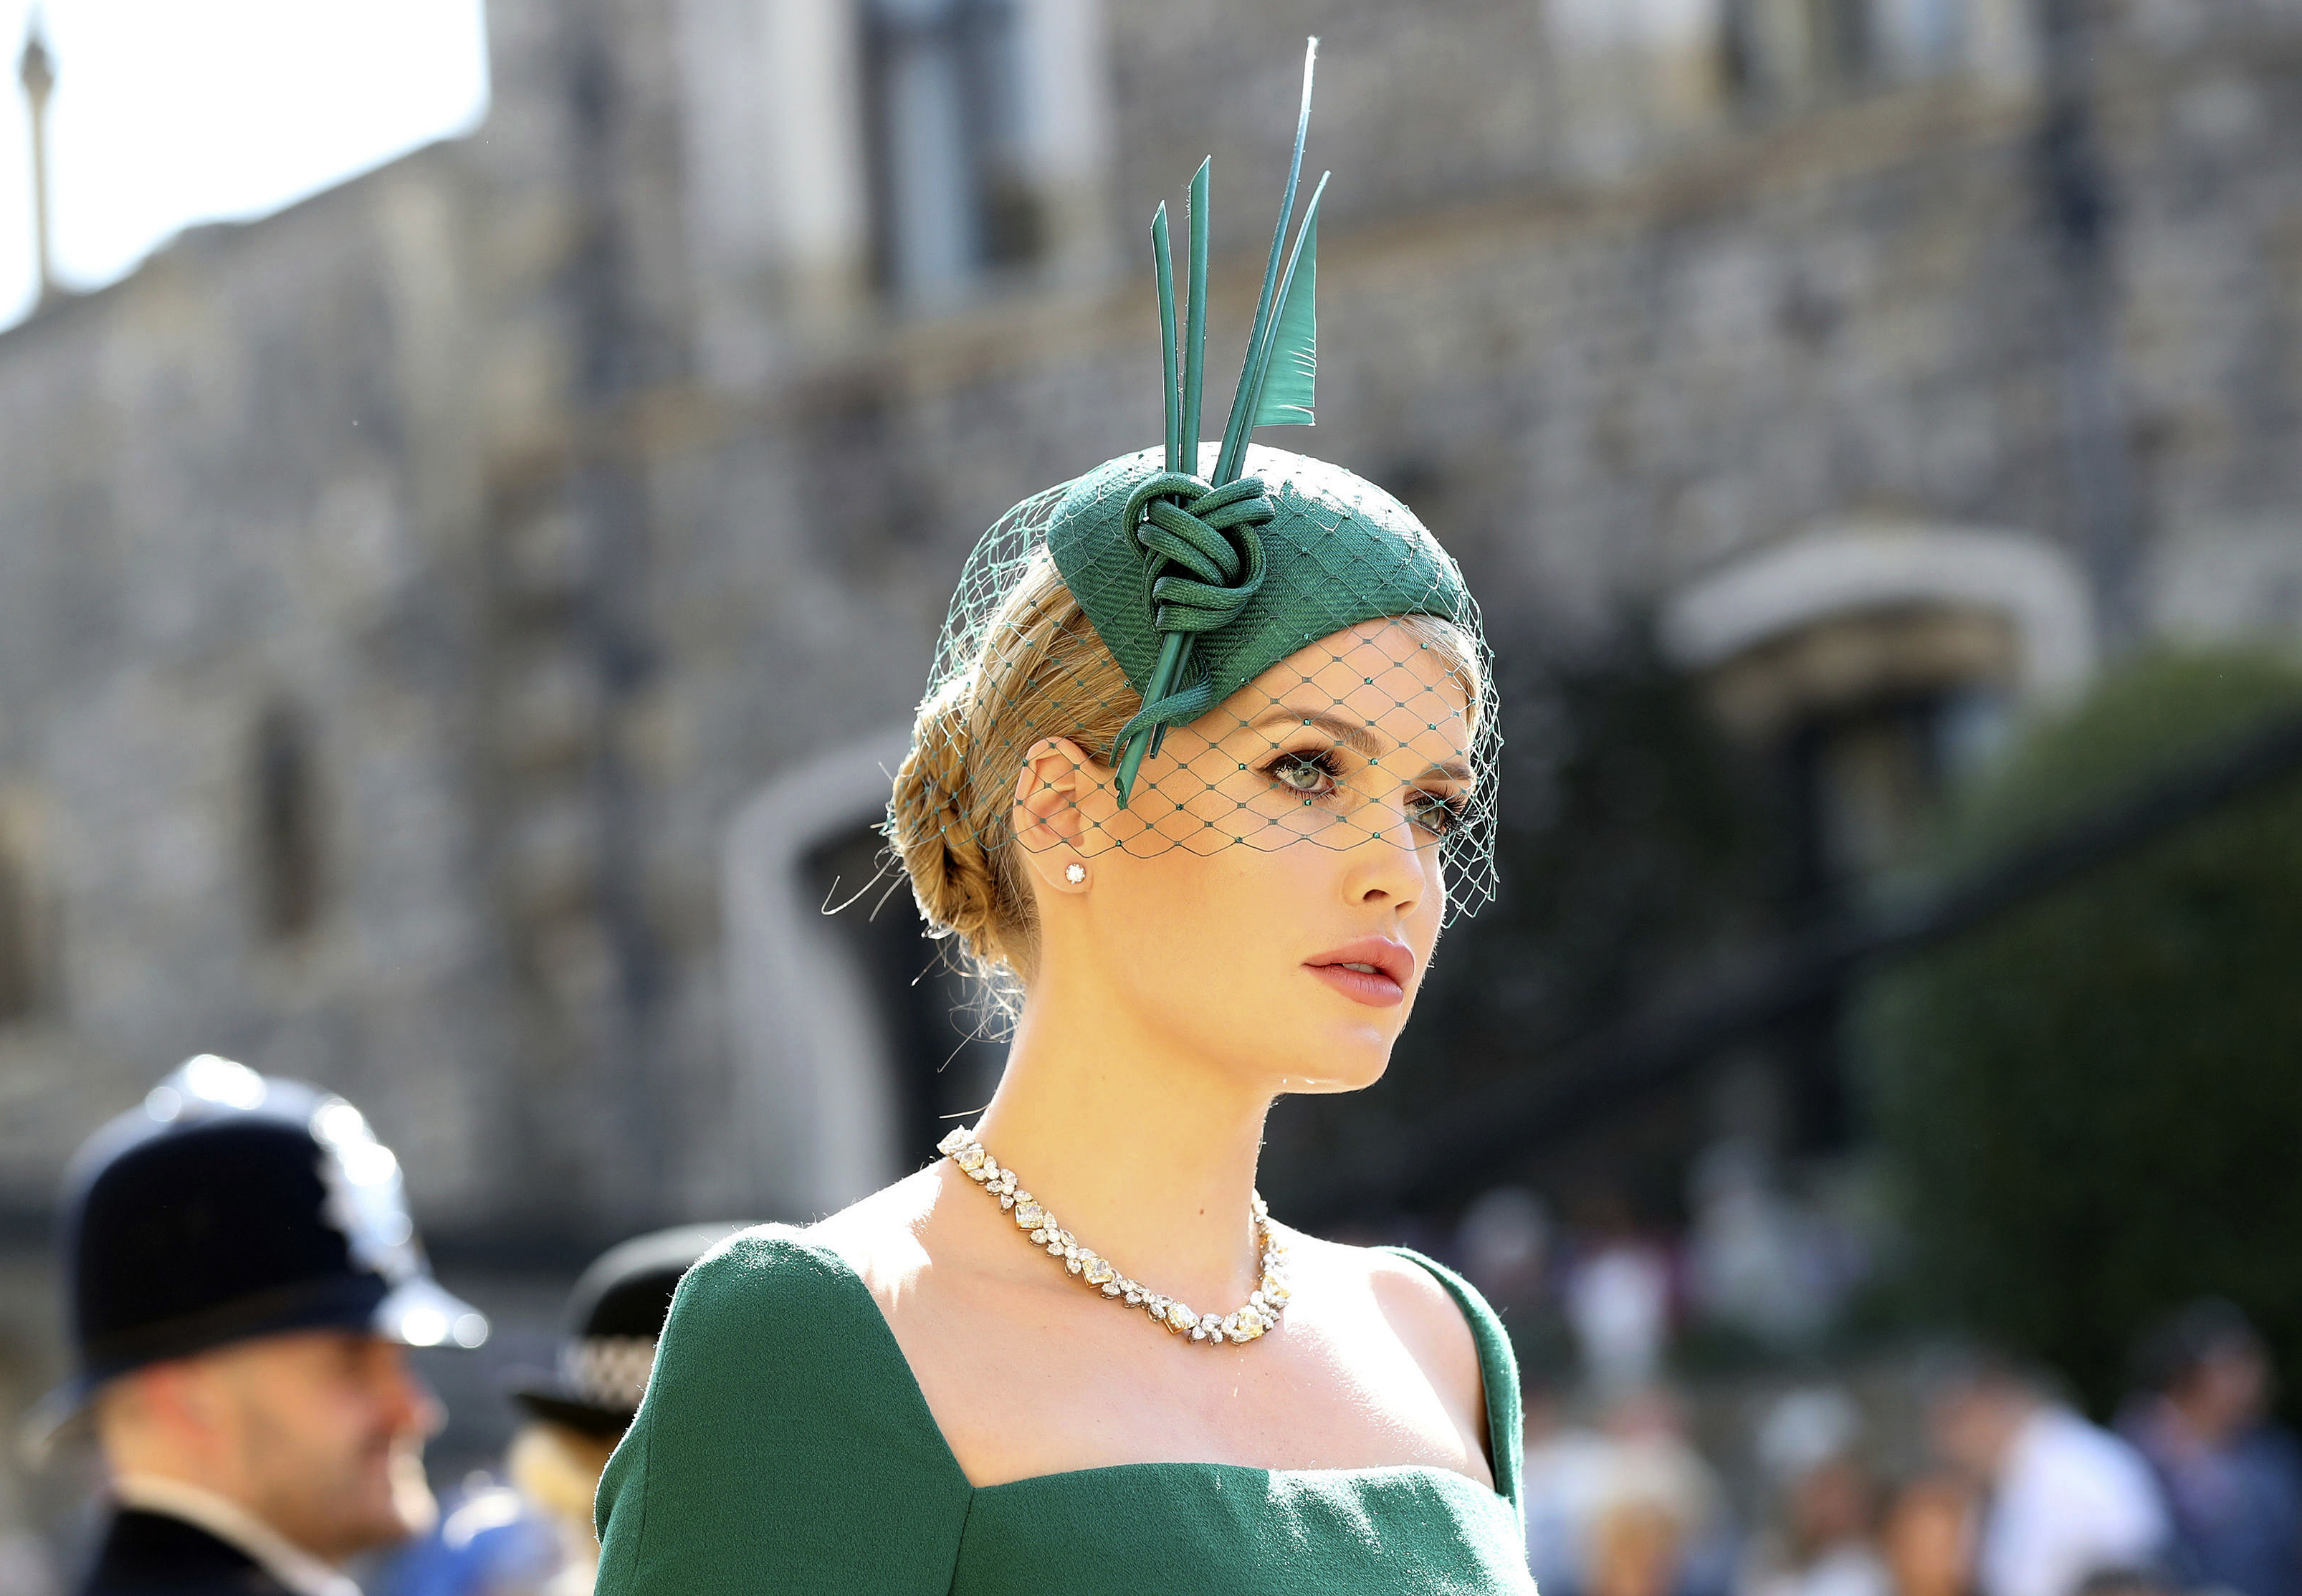 Hats and fascinators at the royal wedding - CNN Style 85cedaa8c6f